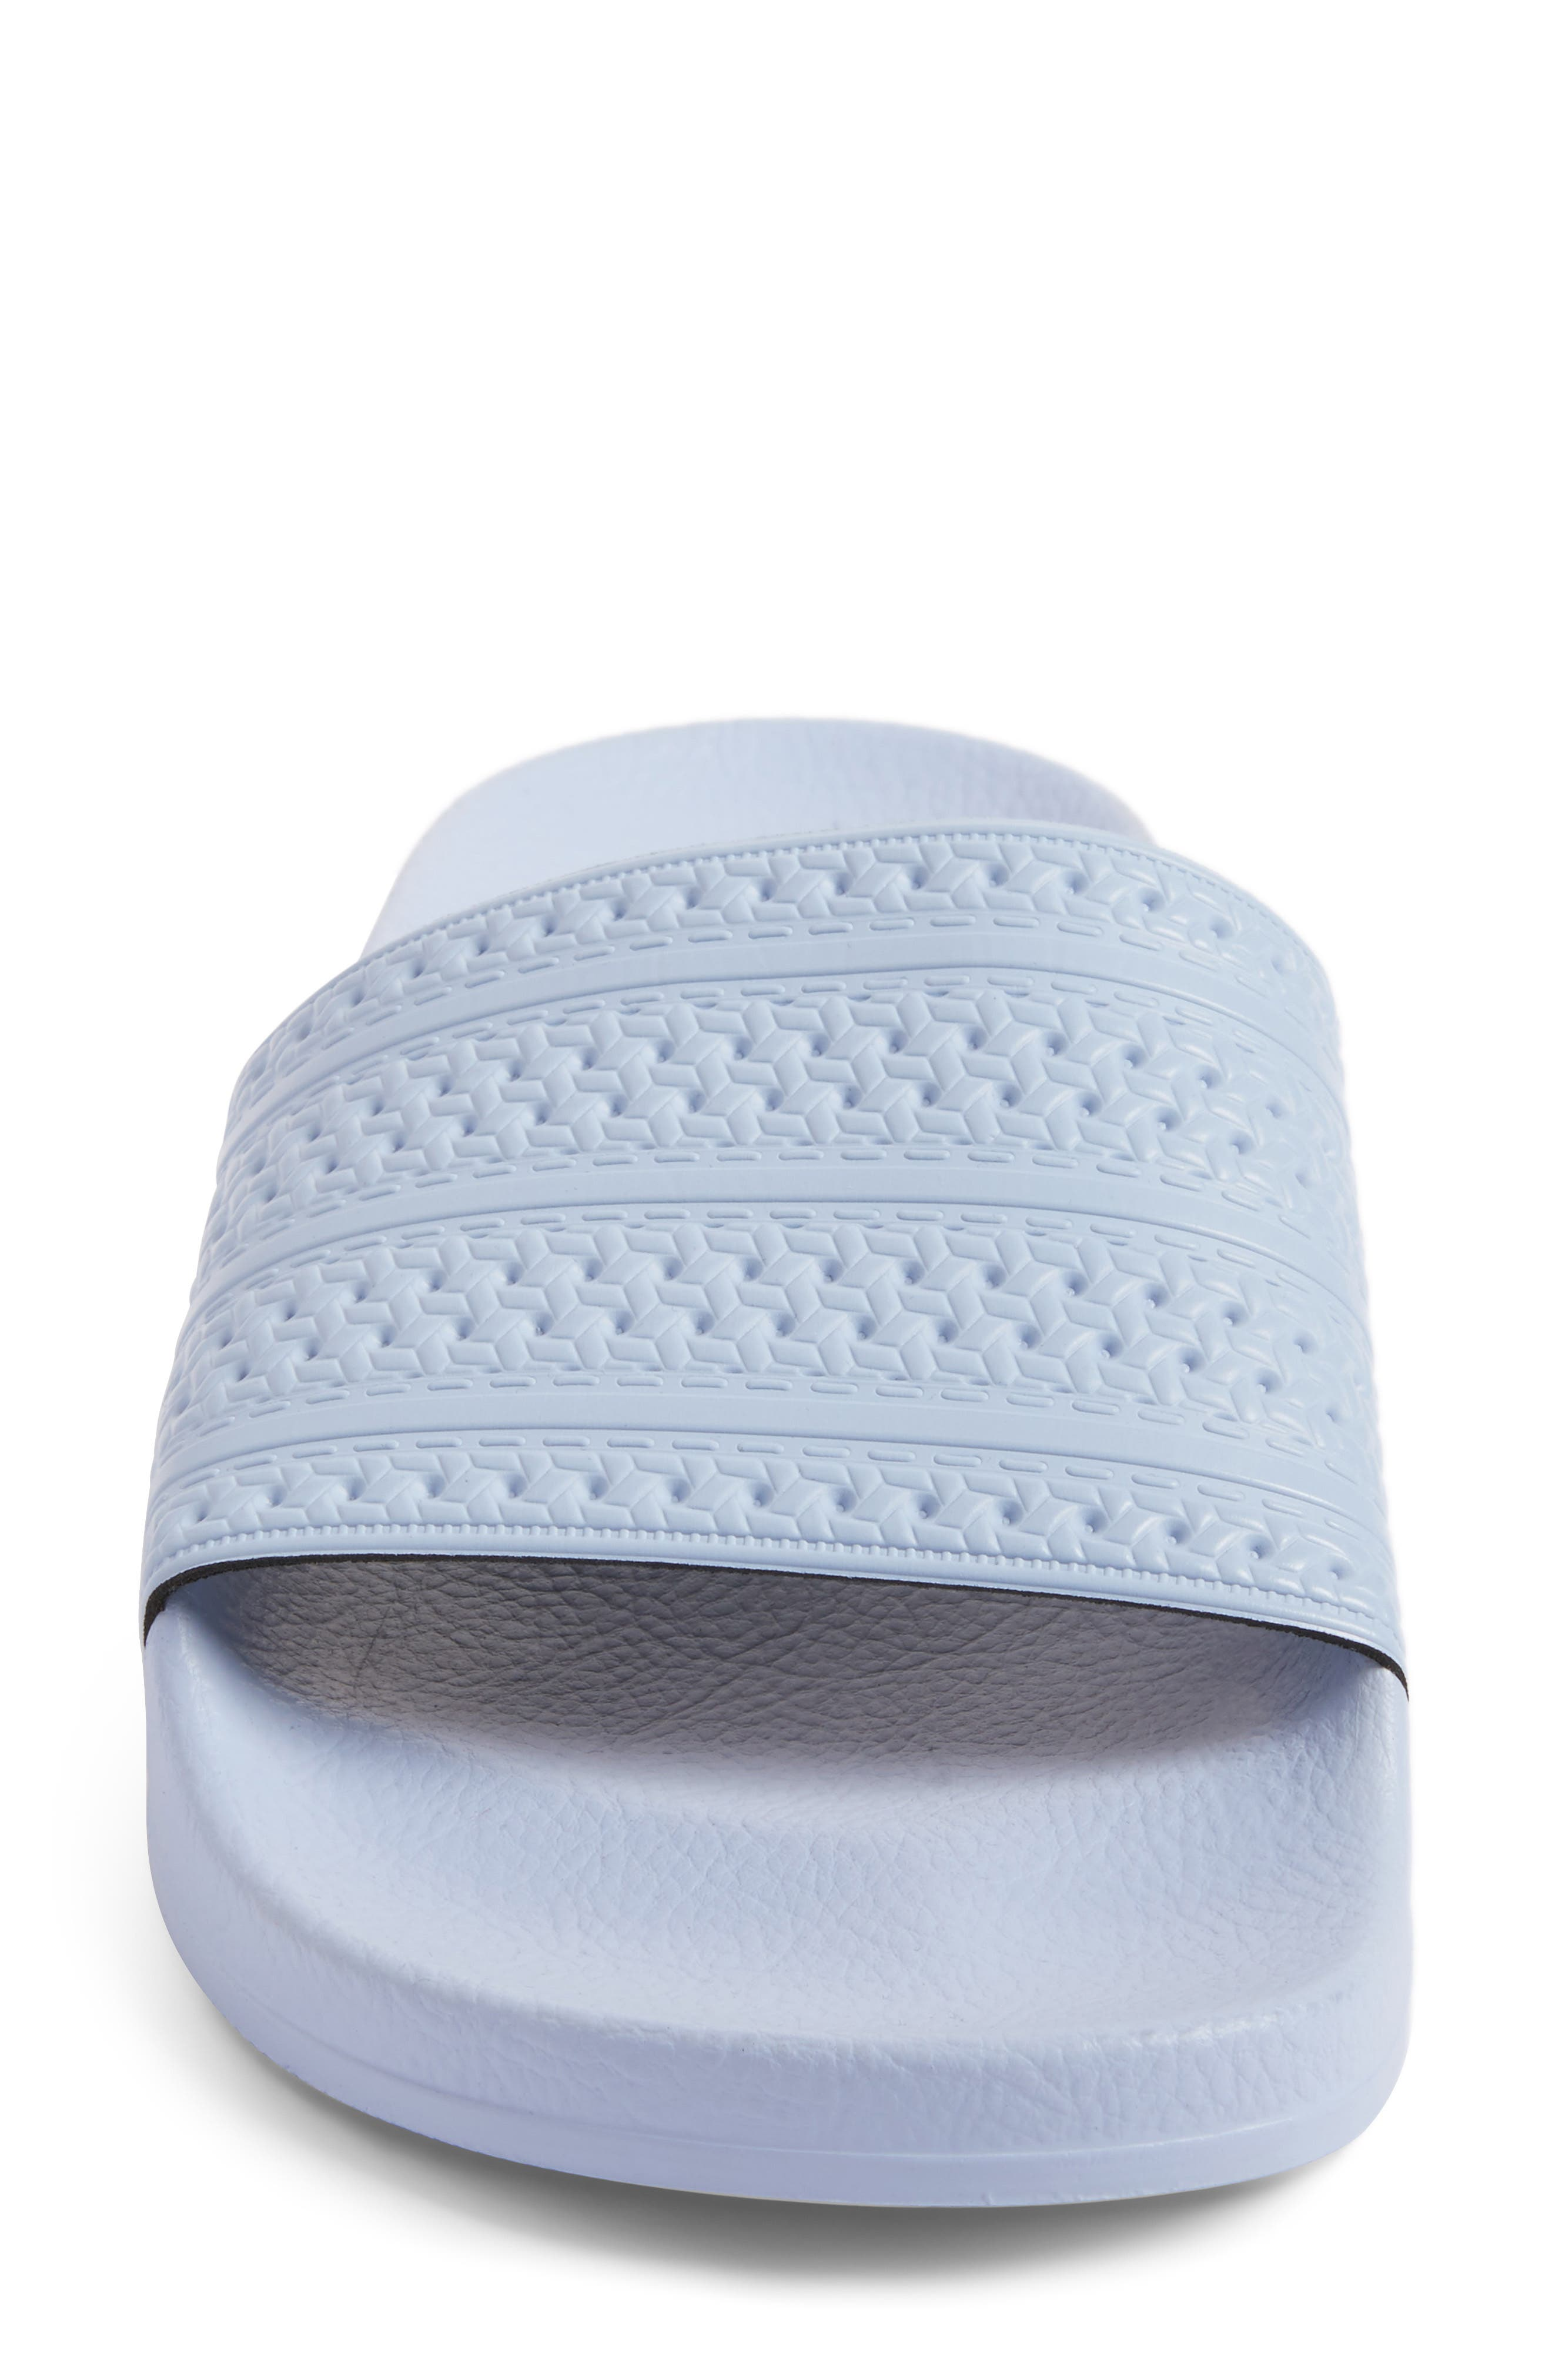 Alternate Image 3  - adidas 'Adilette' Slide Sandal (Women)